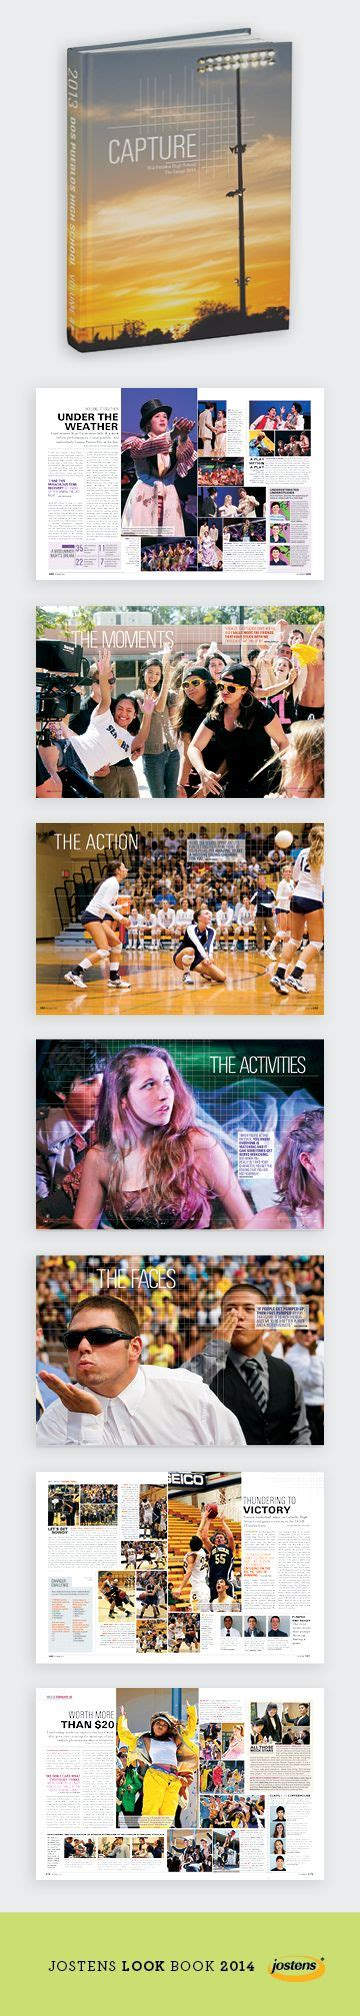 yearbook layout activities 211 best images about yearbook themes on pinterest